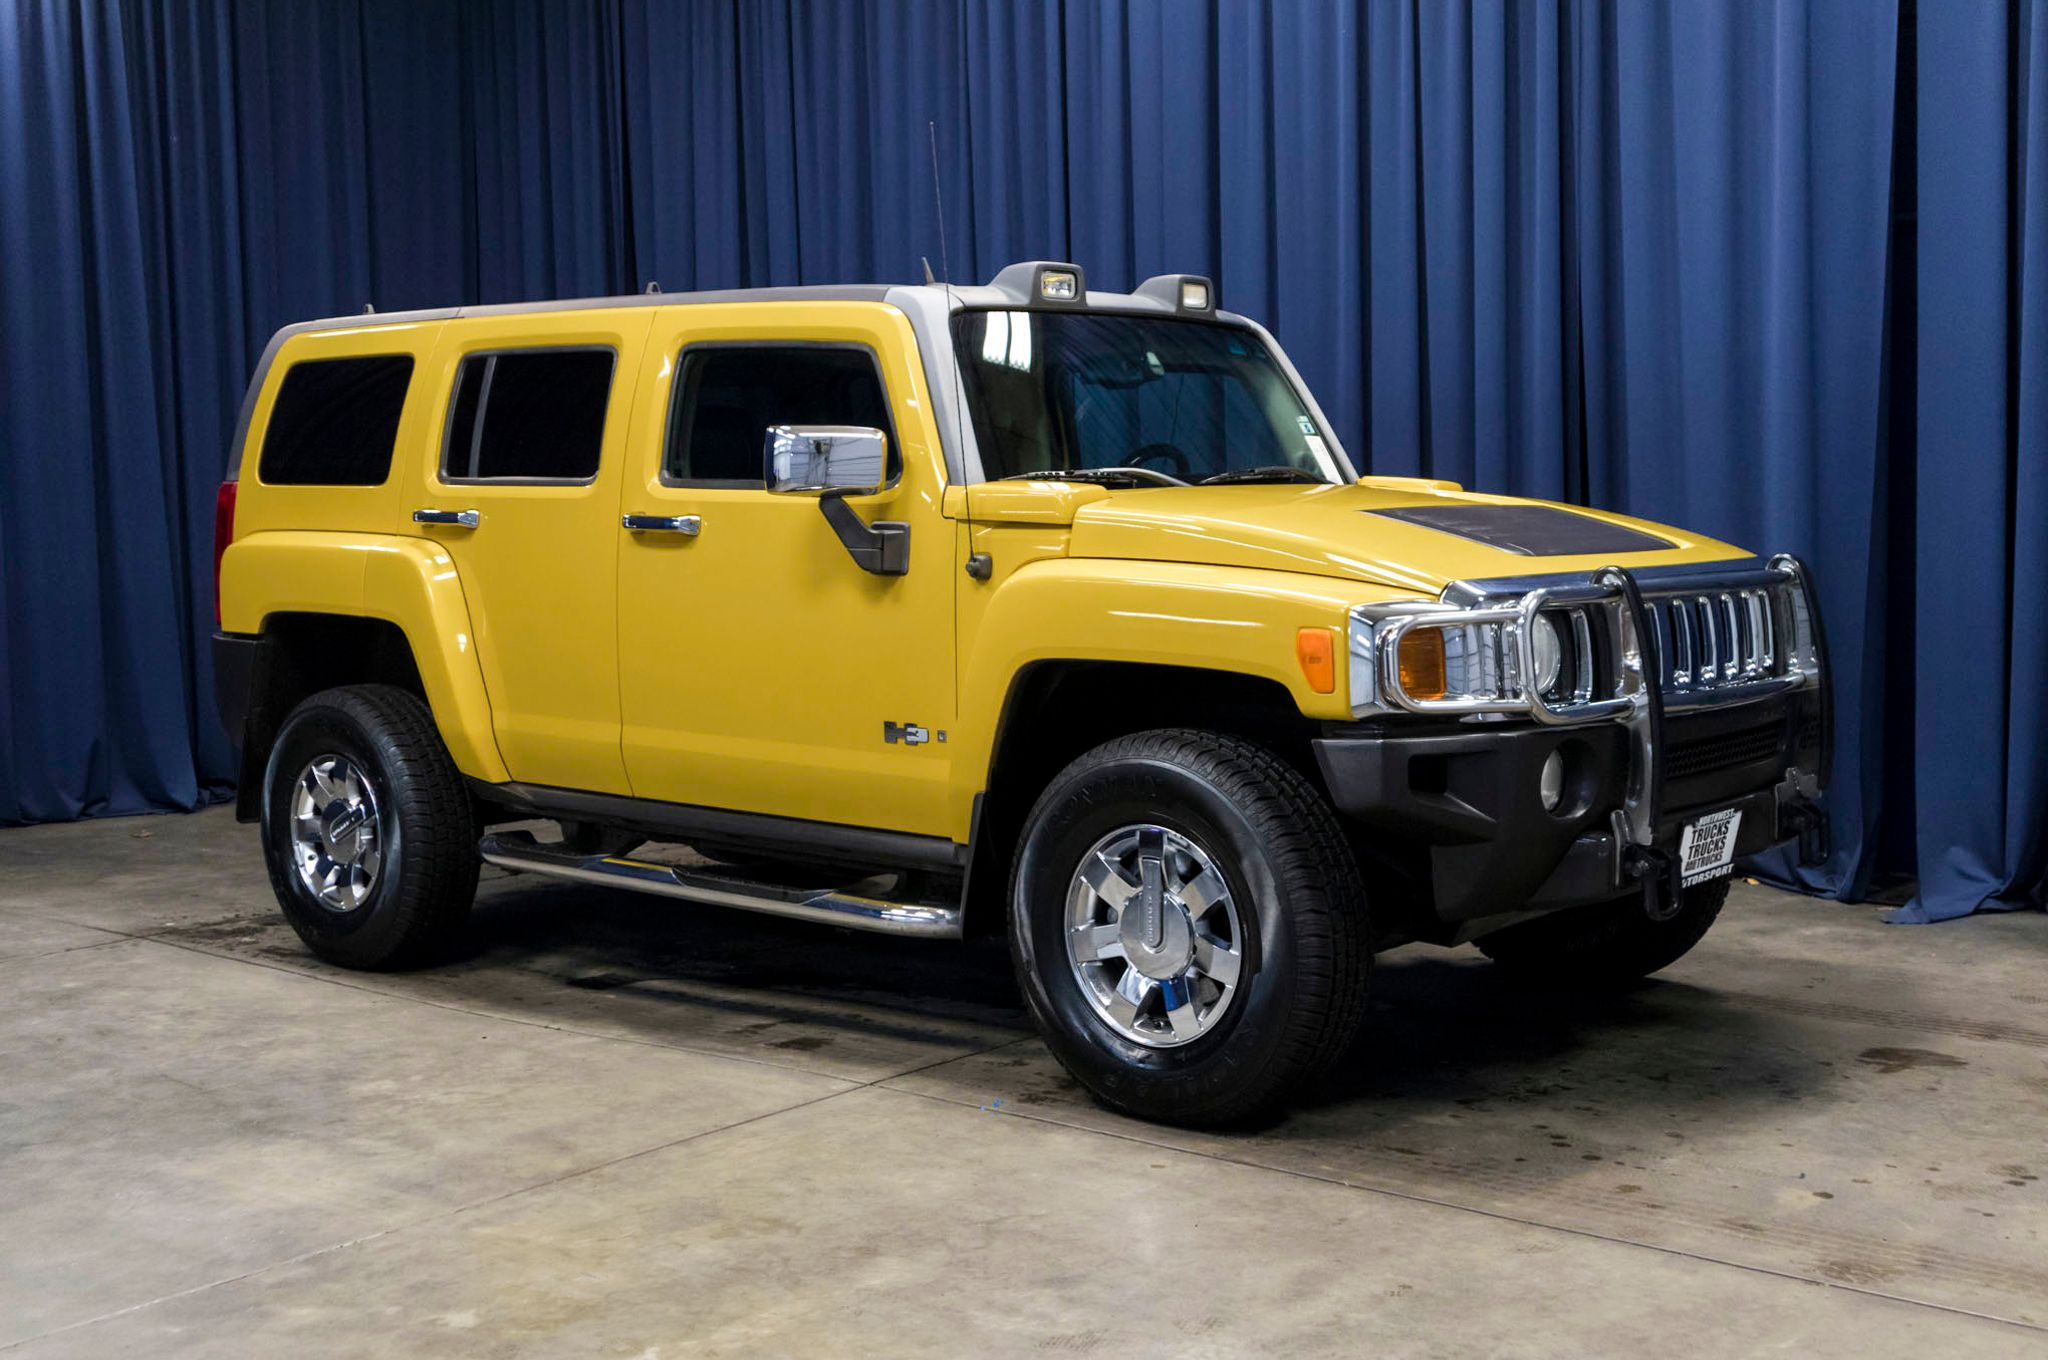 Used 2006 Hummer H3 4x4 SUV For Sale - 47045